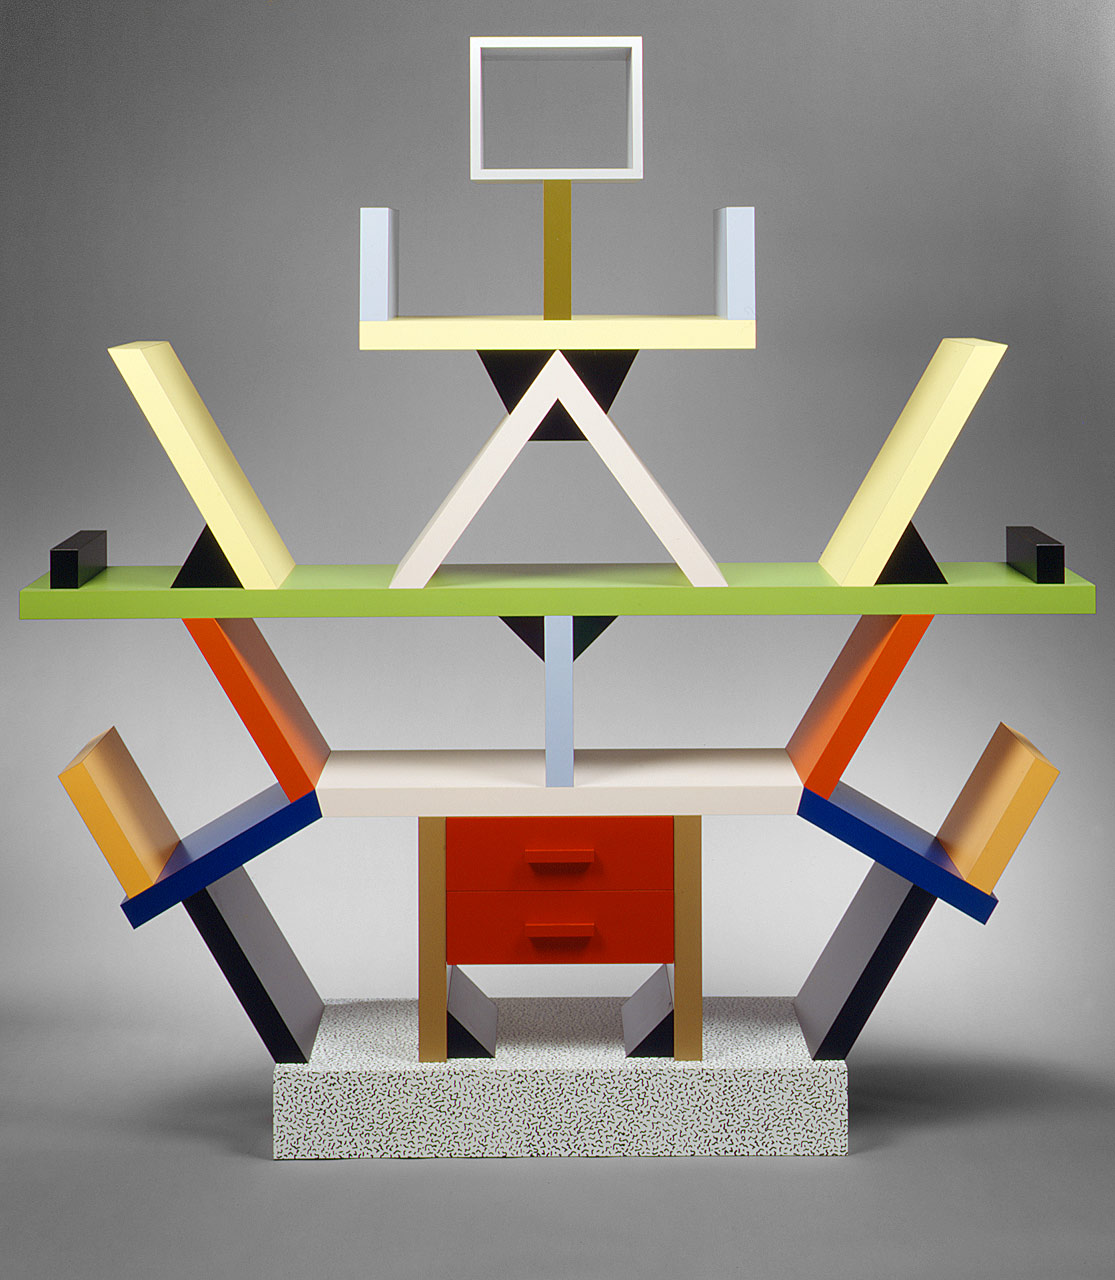 """Working Title/Artist: 1981, Ettore Sottsass: """"Carlton"""" Room Divider, wood, plastic laminate Department: Modern Art Culture/Period/Location: HB/TOA Date Code: 11 Working Date: scanned for collections"""